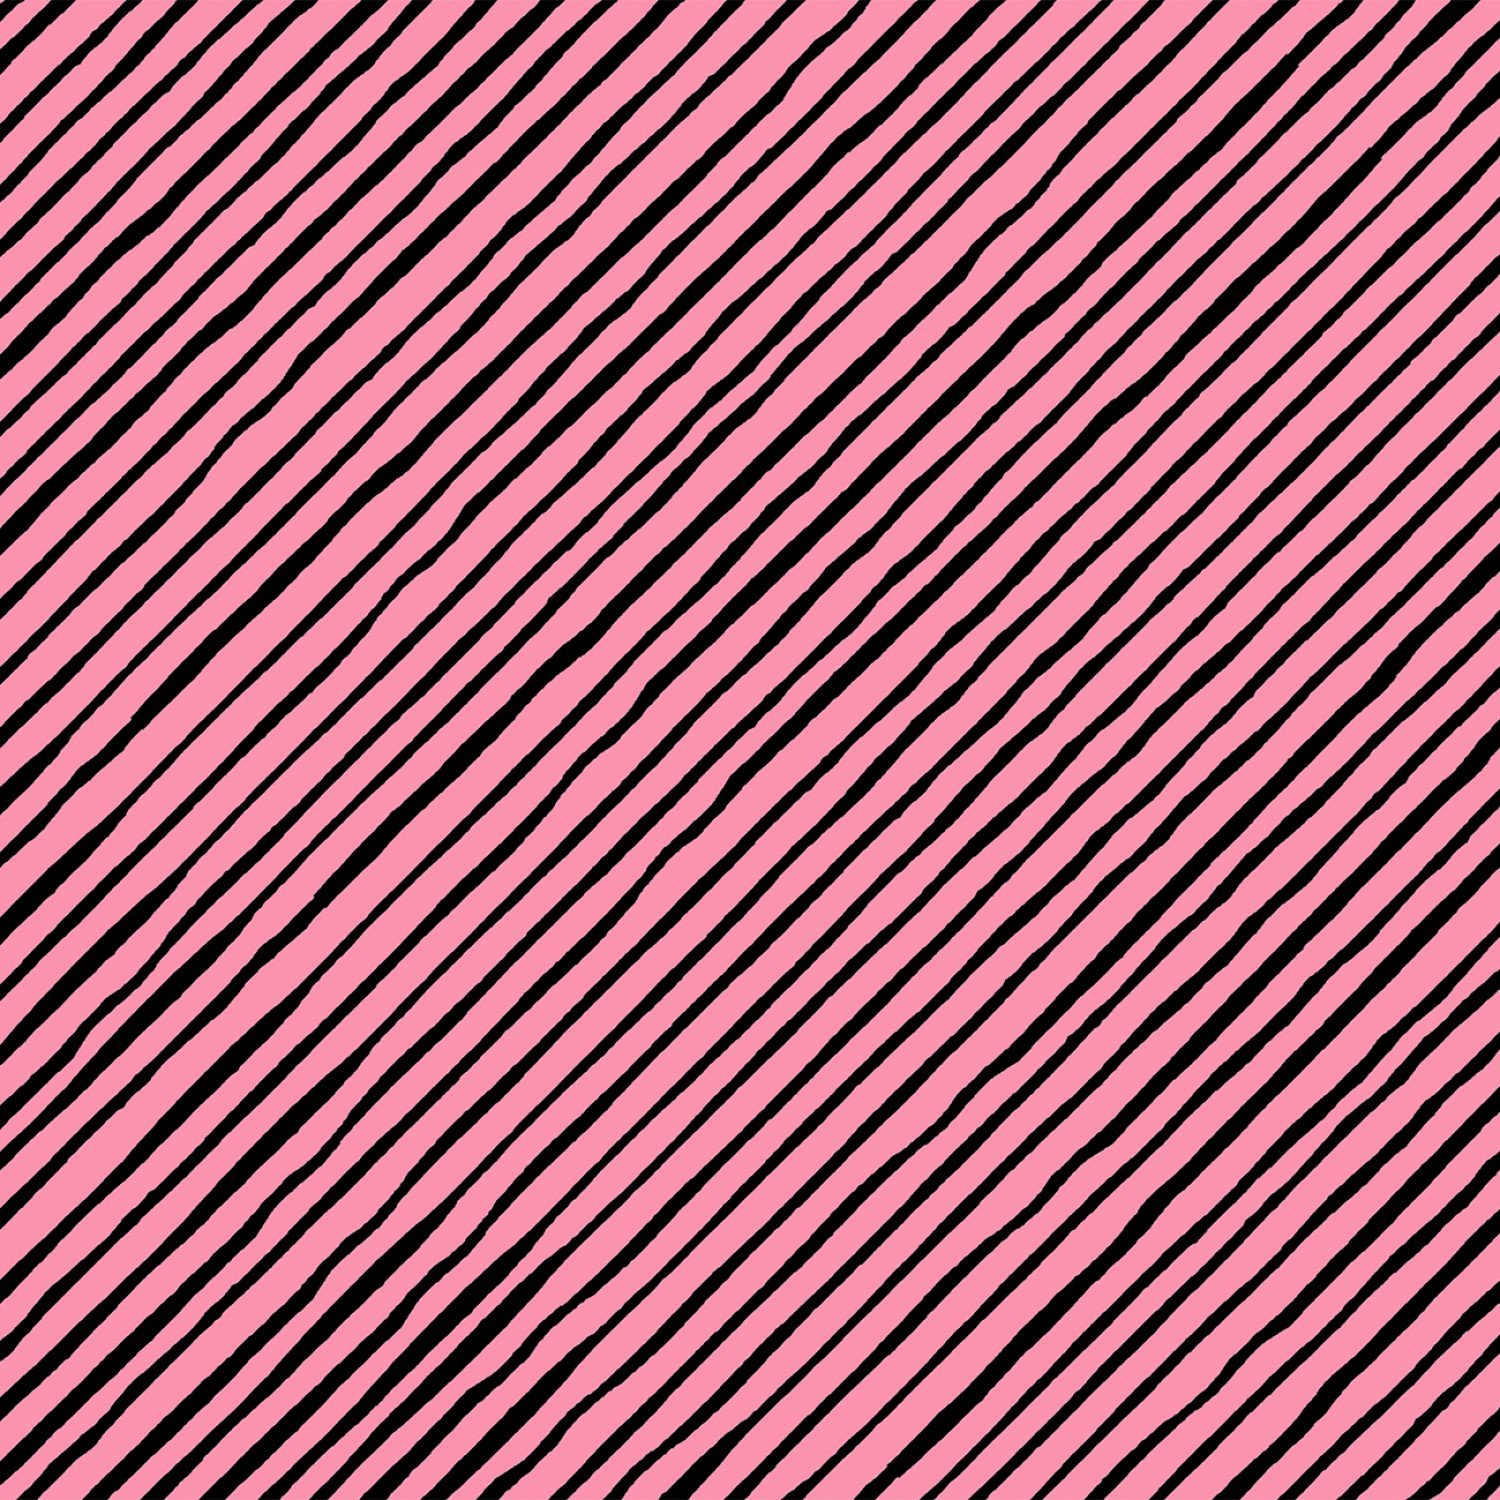 Dog Gone, Sorta Stripe, Pink